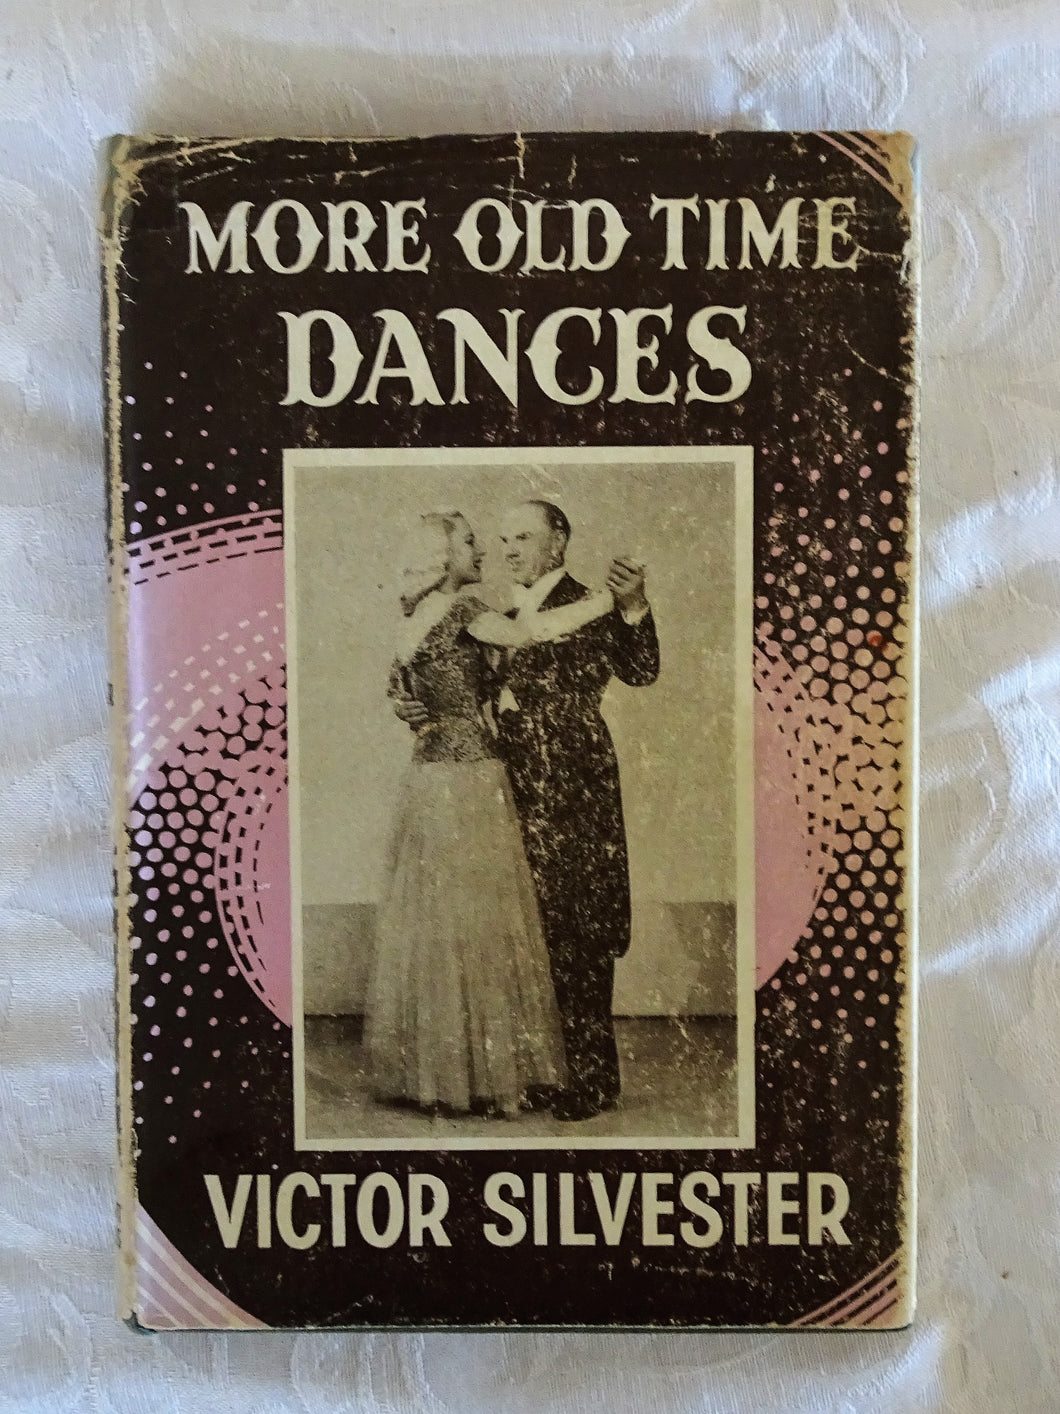 More Old Time Dances by Victor Silvester